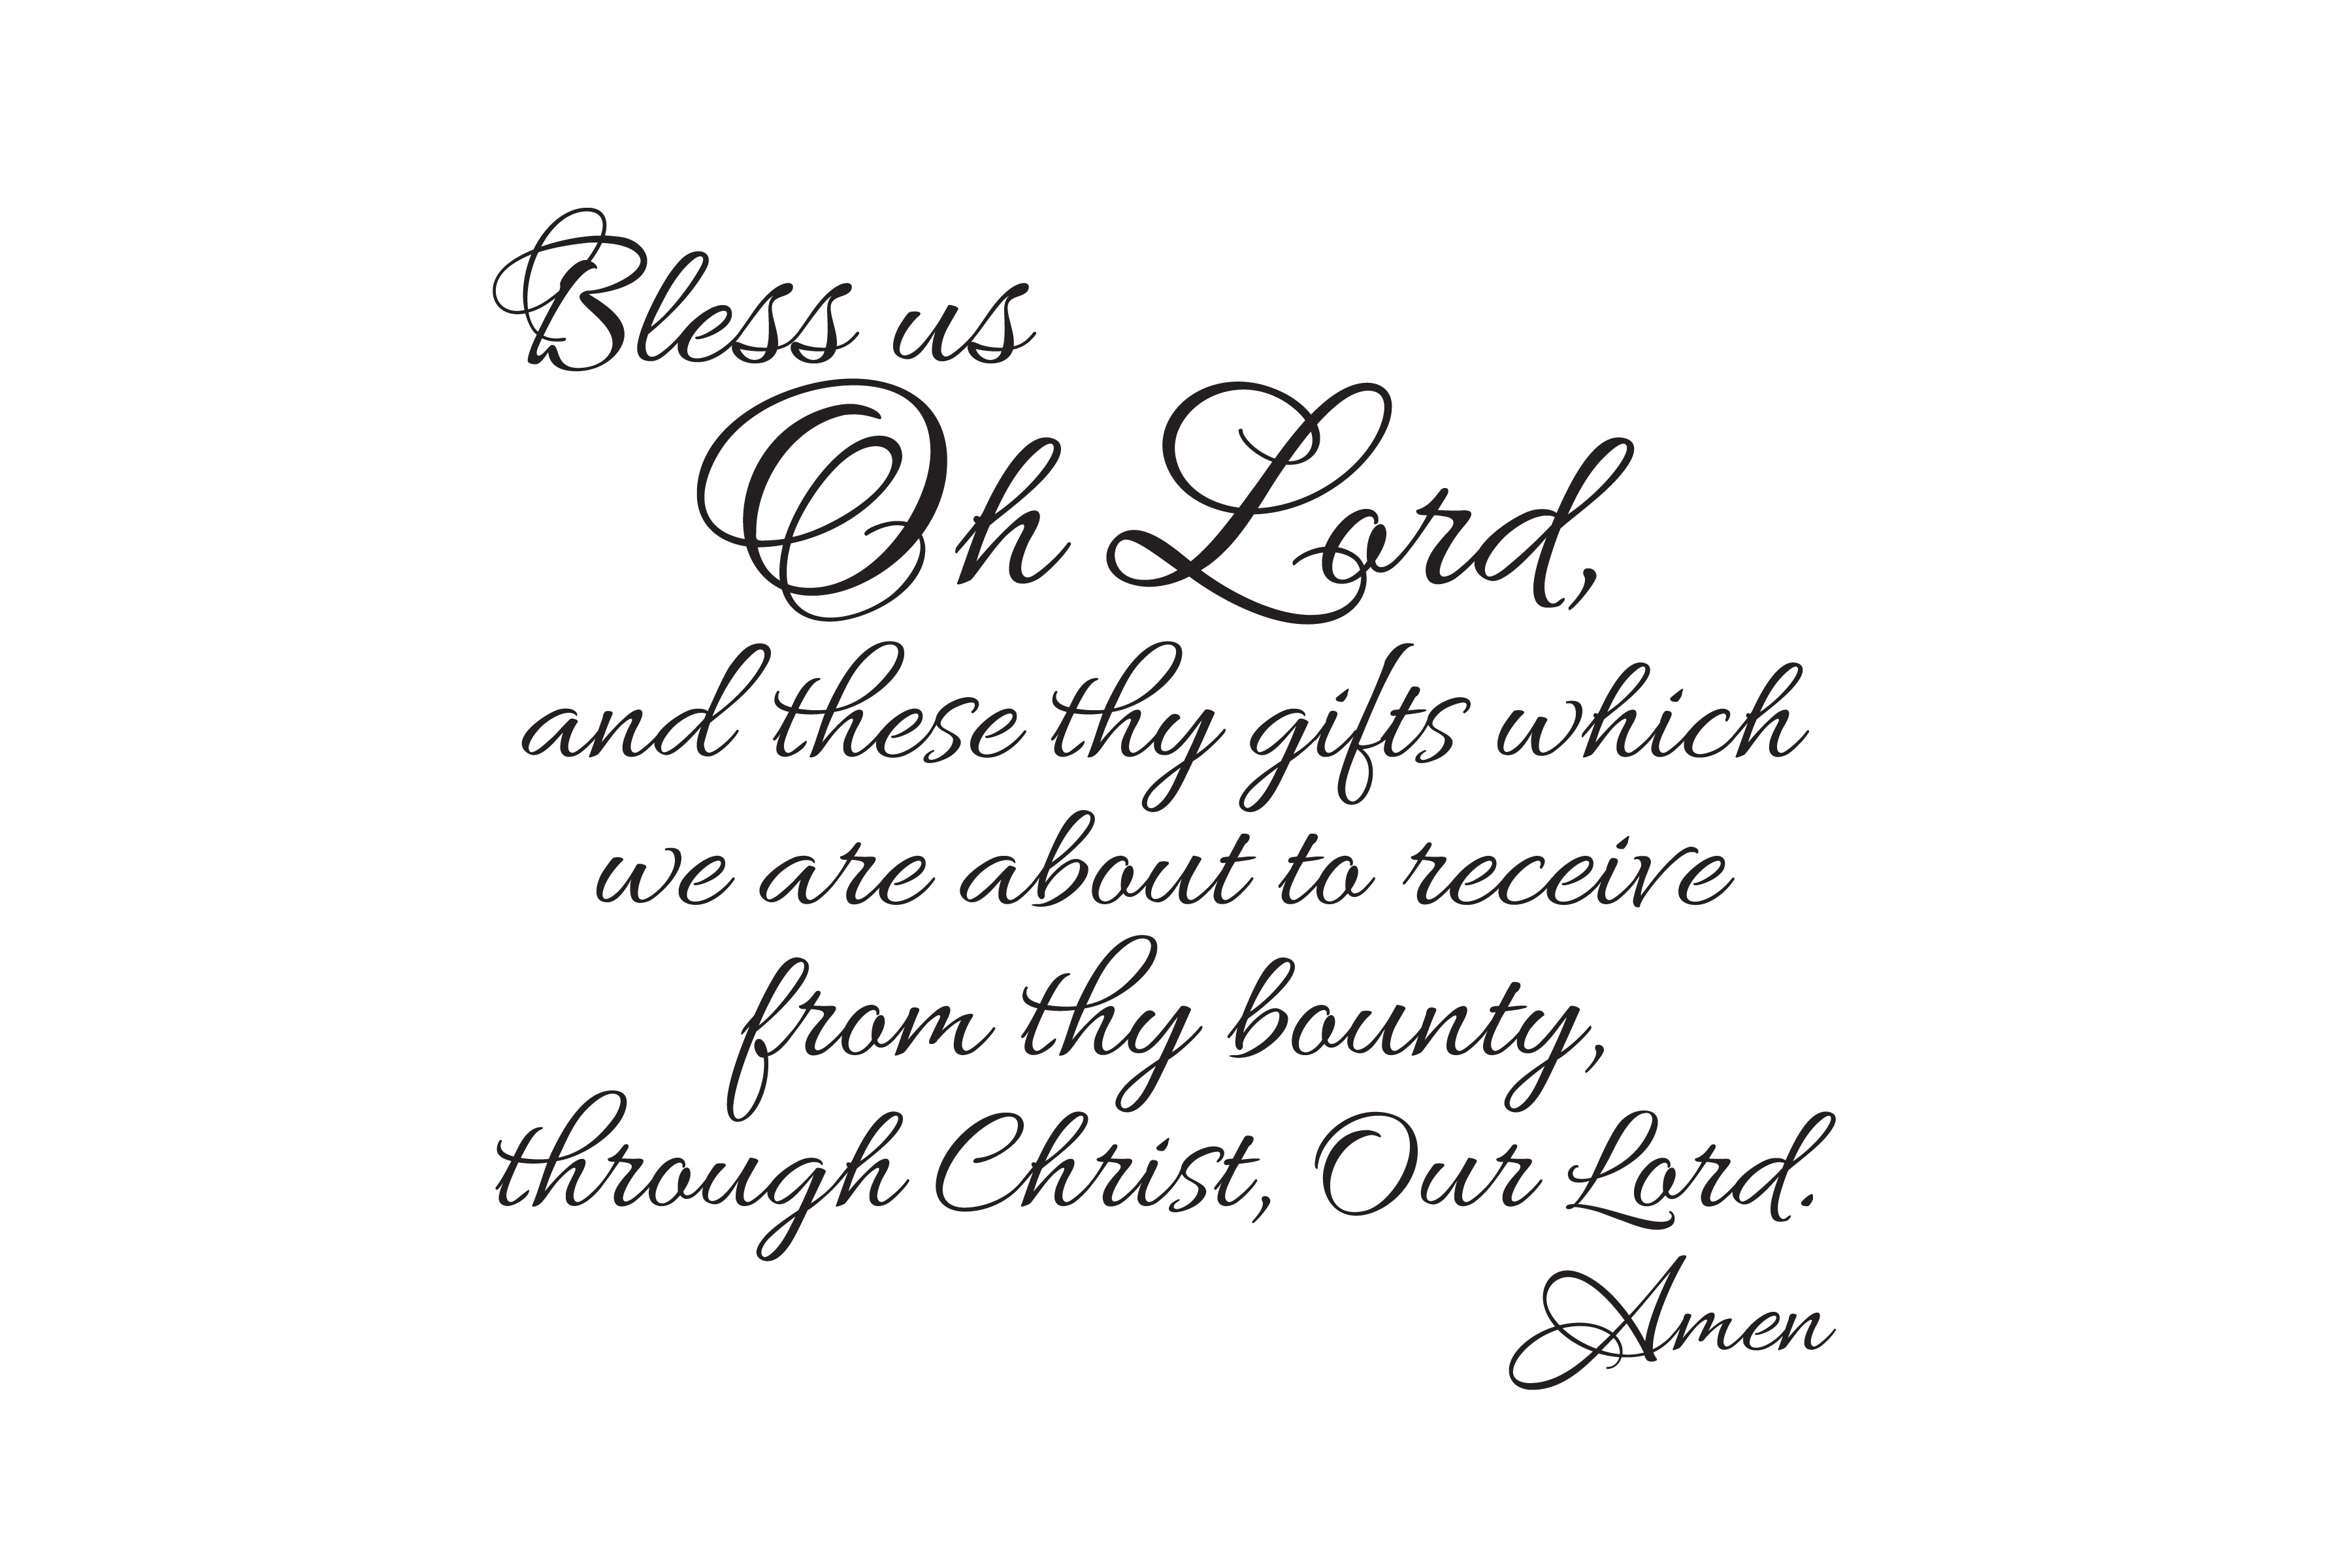 Bless us Oh Lord And these Thy gifts 1 Common Table Prayer : Bless us oh lord and these thy gifts full verse proof from wildeyessigns.com size 3600 x 2400 jpeg 660kB